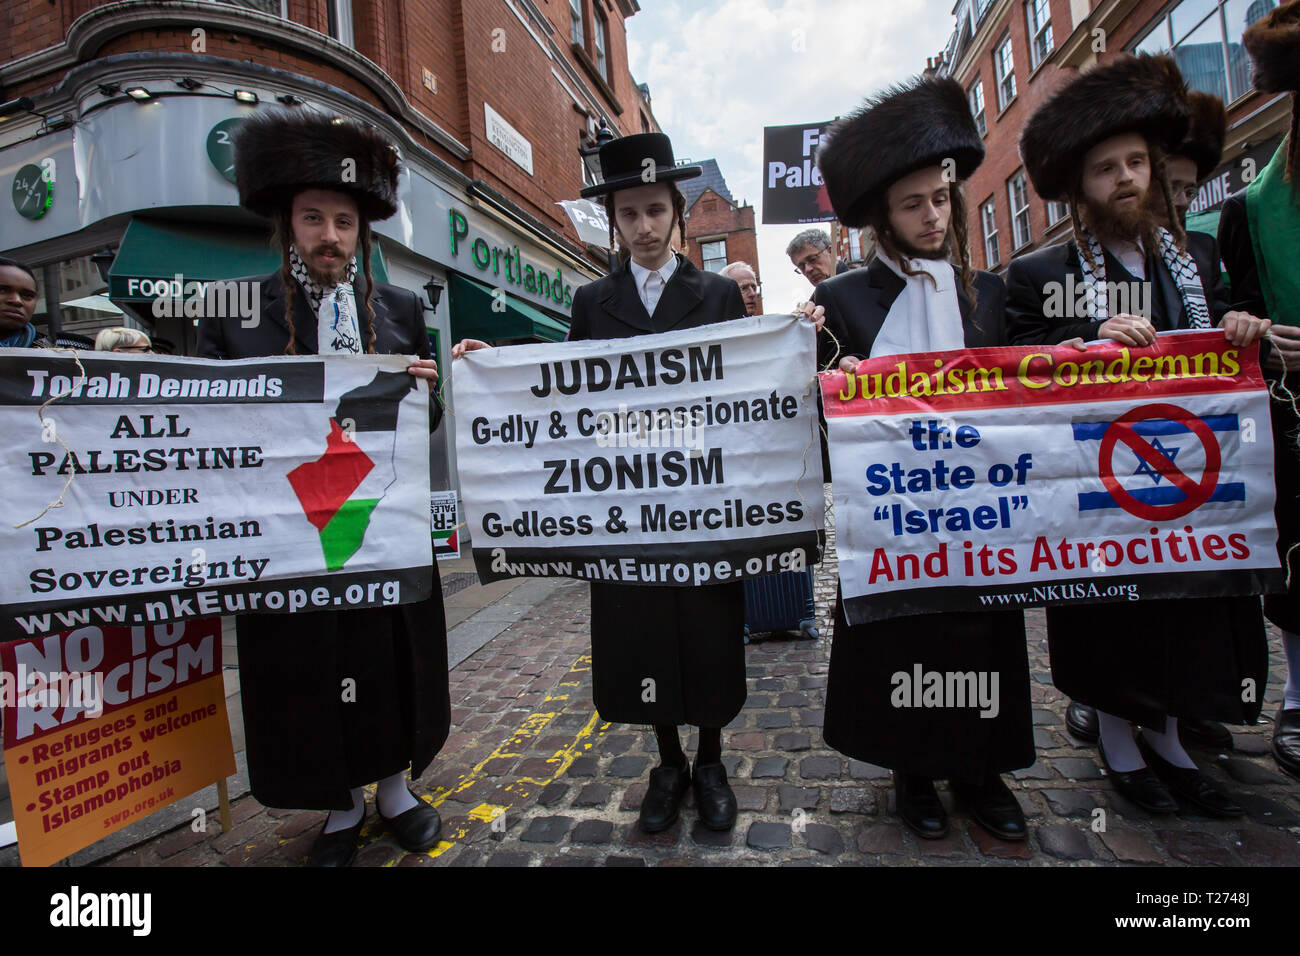 London, UK. 30 March, 2019. Hasidic Jews join the protest. Palestinians and supporters gathered outside of the Israeli Embassy in London to mark the beginning of Nakba and to call on the global community to hold Israel to account for their violation of human rights and International law. David Rowe/ Alamy Live News. Stock Photo